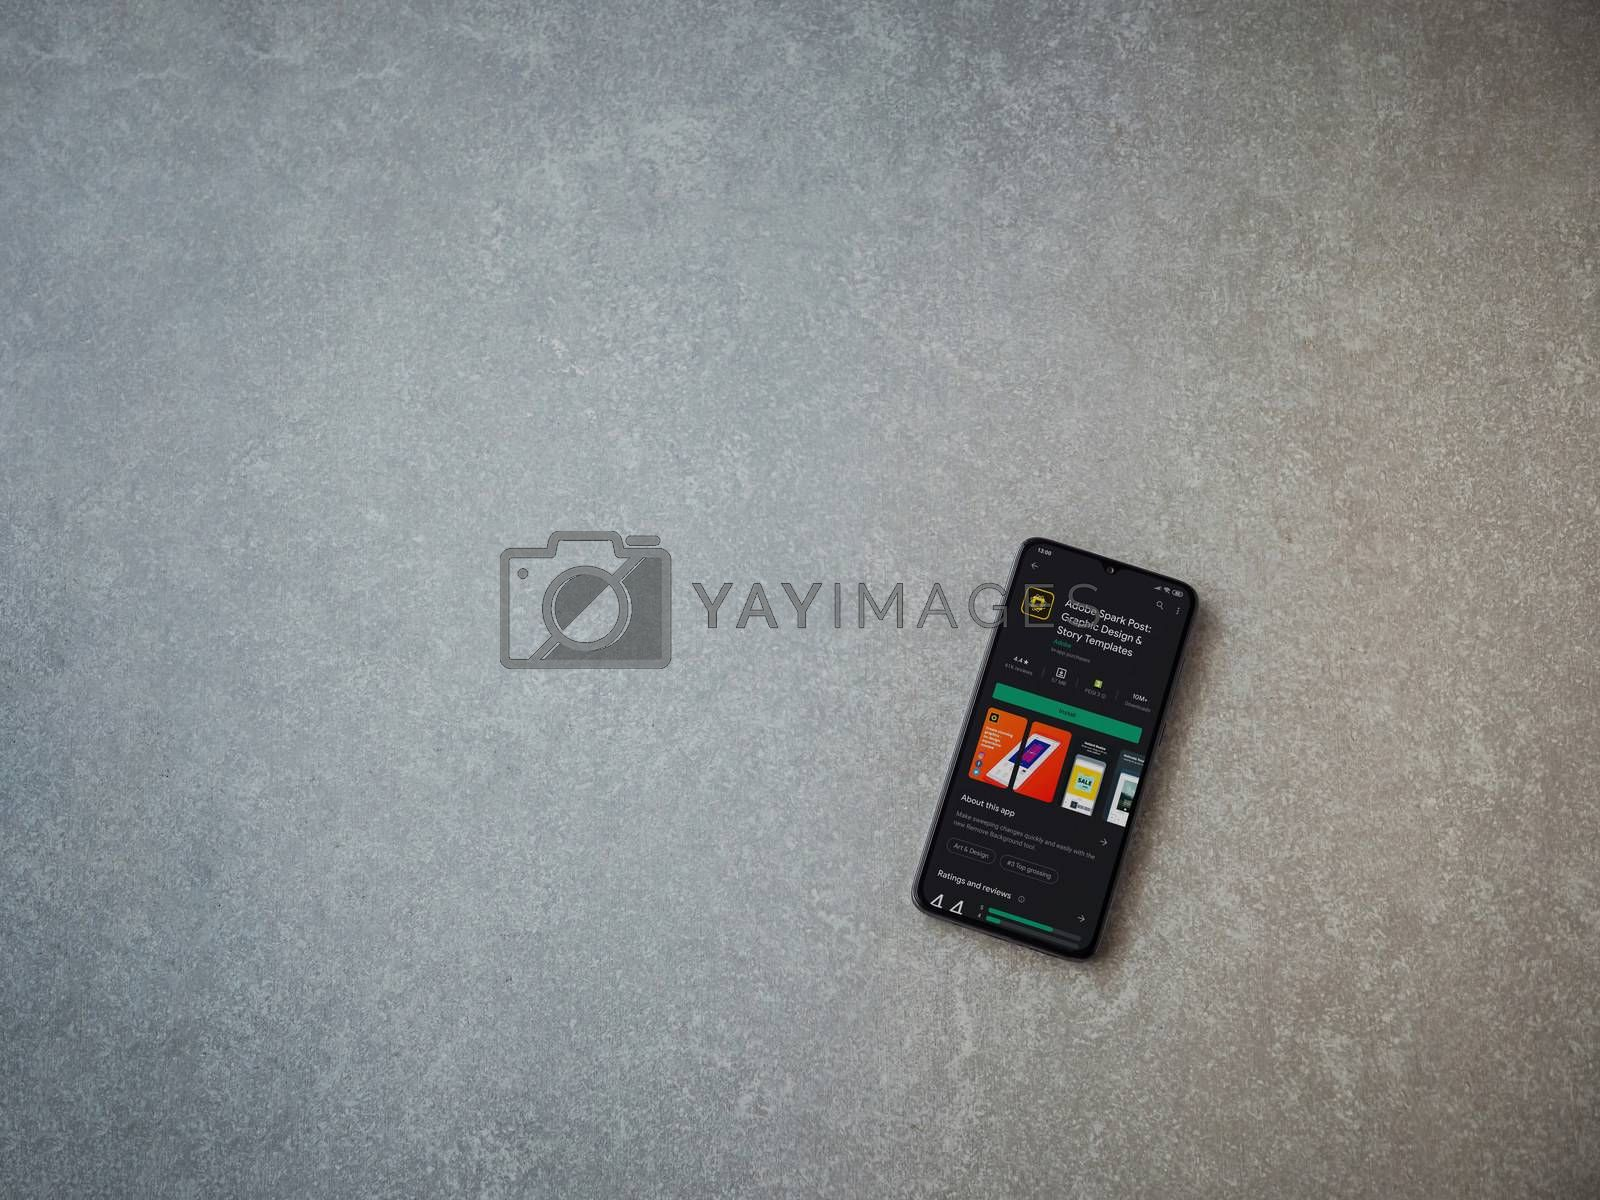 Lod, Israel - July 8, 2020: Adobe Spark Post - Graphic Design and Story Templates app play store page on the display of a black mobile smartphone on ceramic stone background.Top view flat lay with copy space